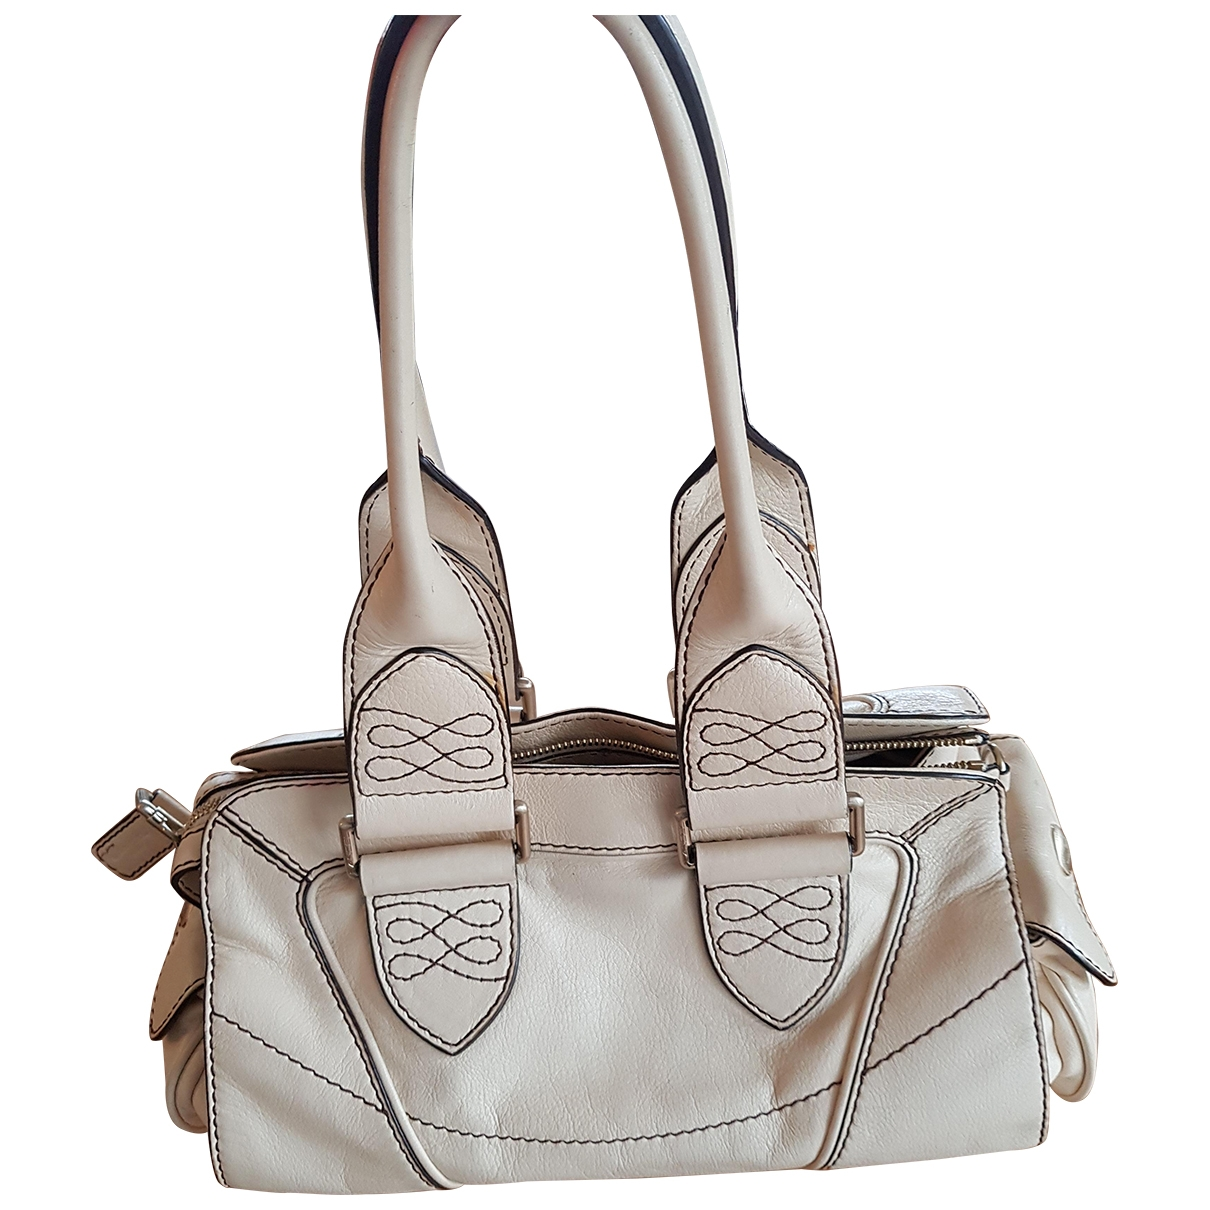 Lancel \N White Leather handbag for Women \N